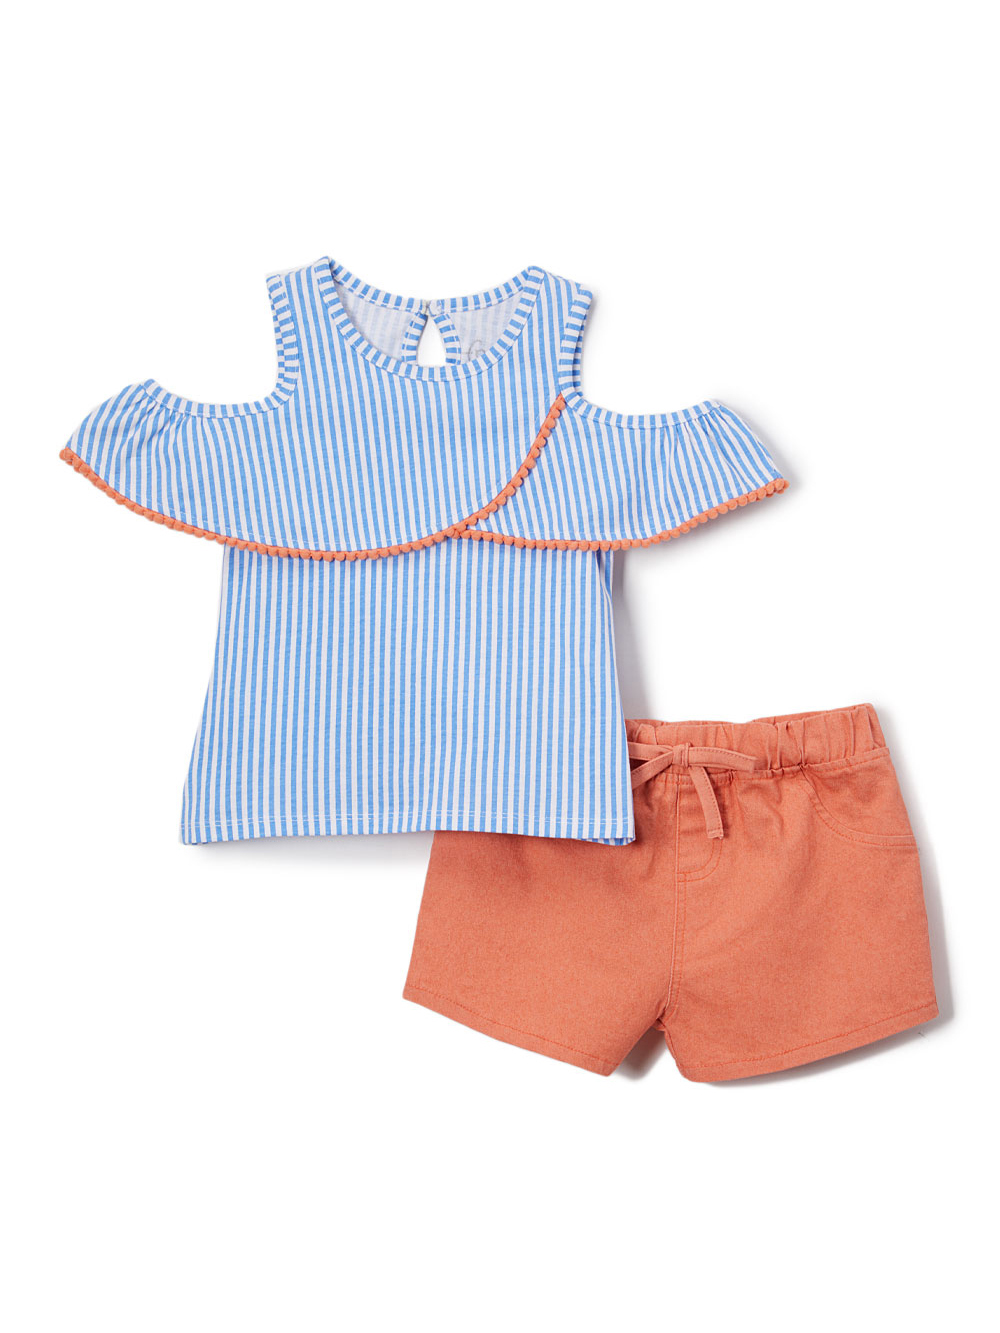 Striped Cold Shoulder Top and Shorts, 2pc Outfit Set (Toddler Girls)